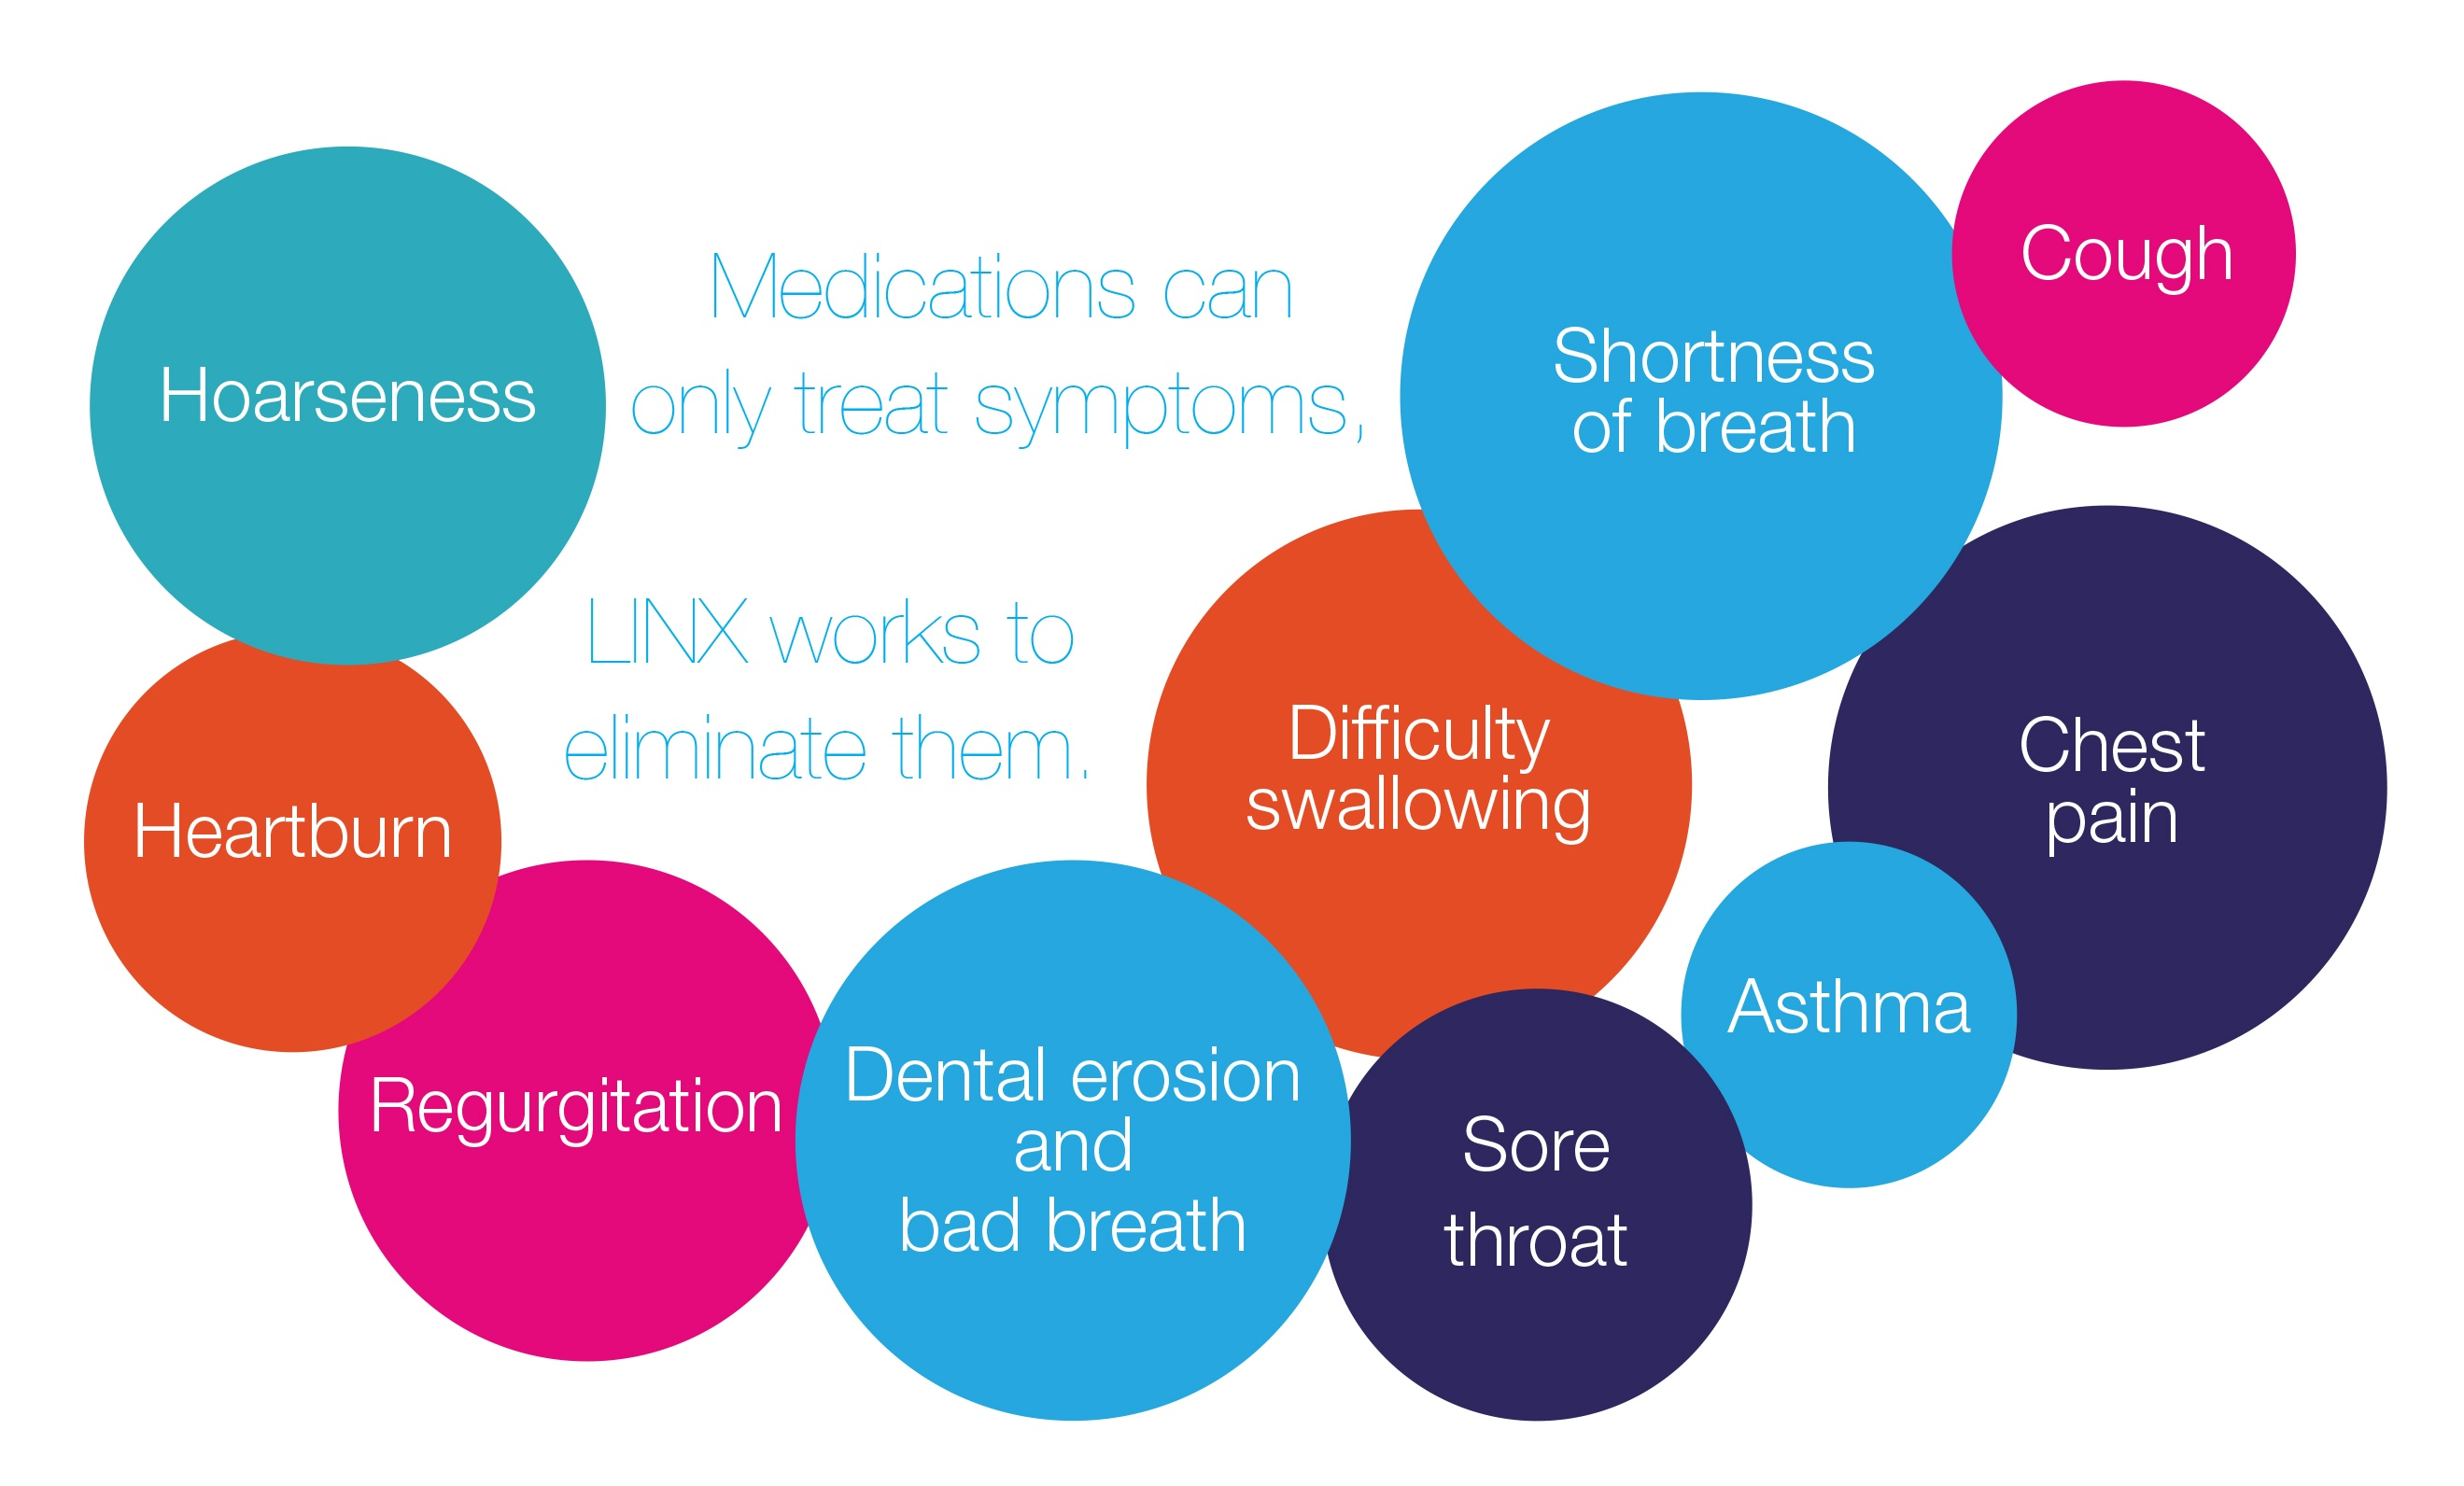 Medications can only treat symptoms, LINX works to eliminate them.